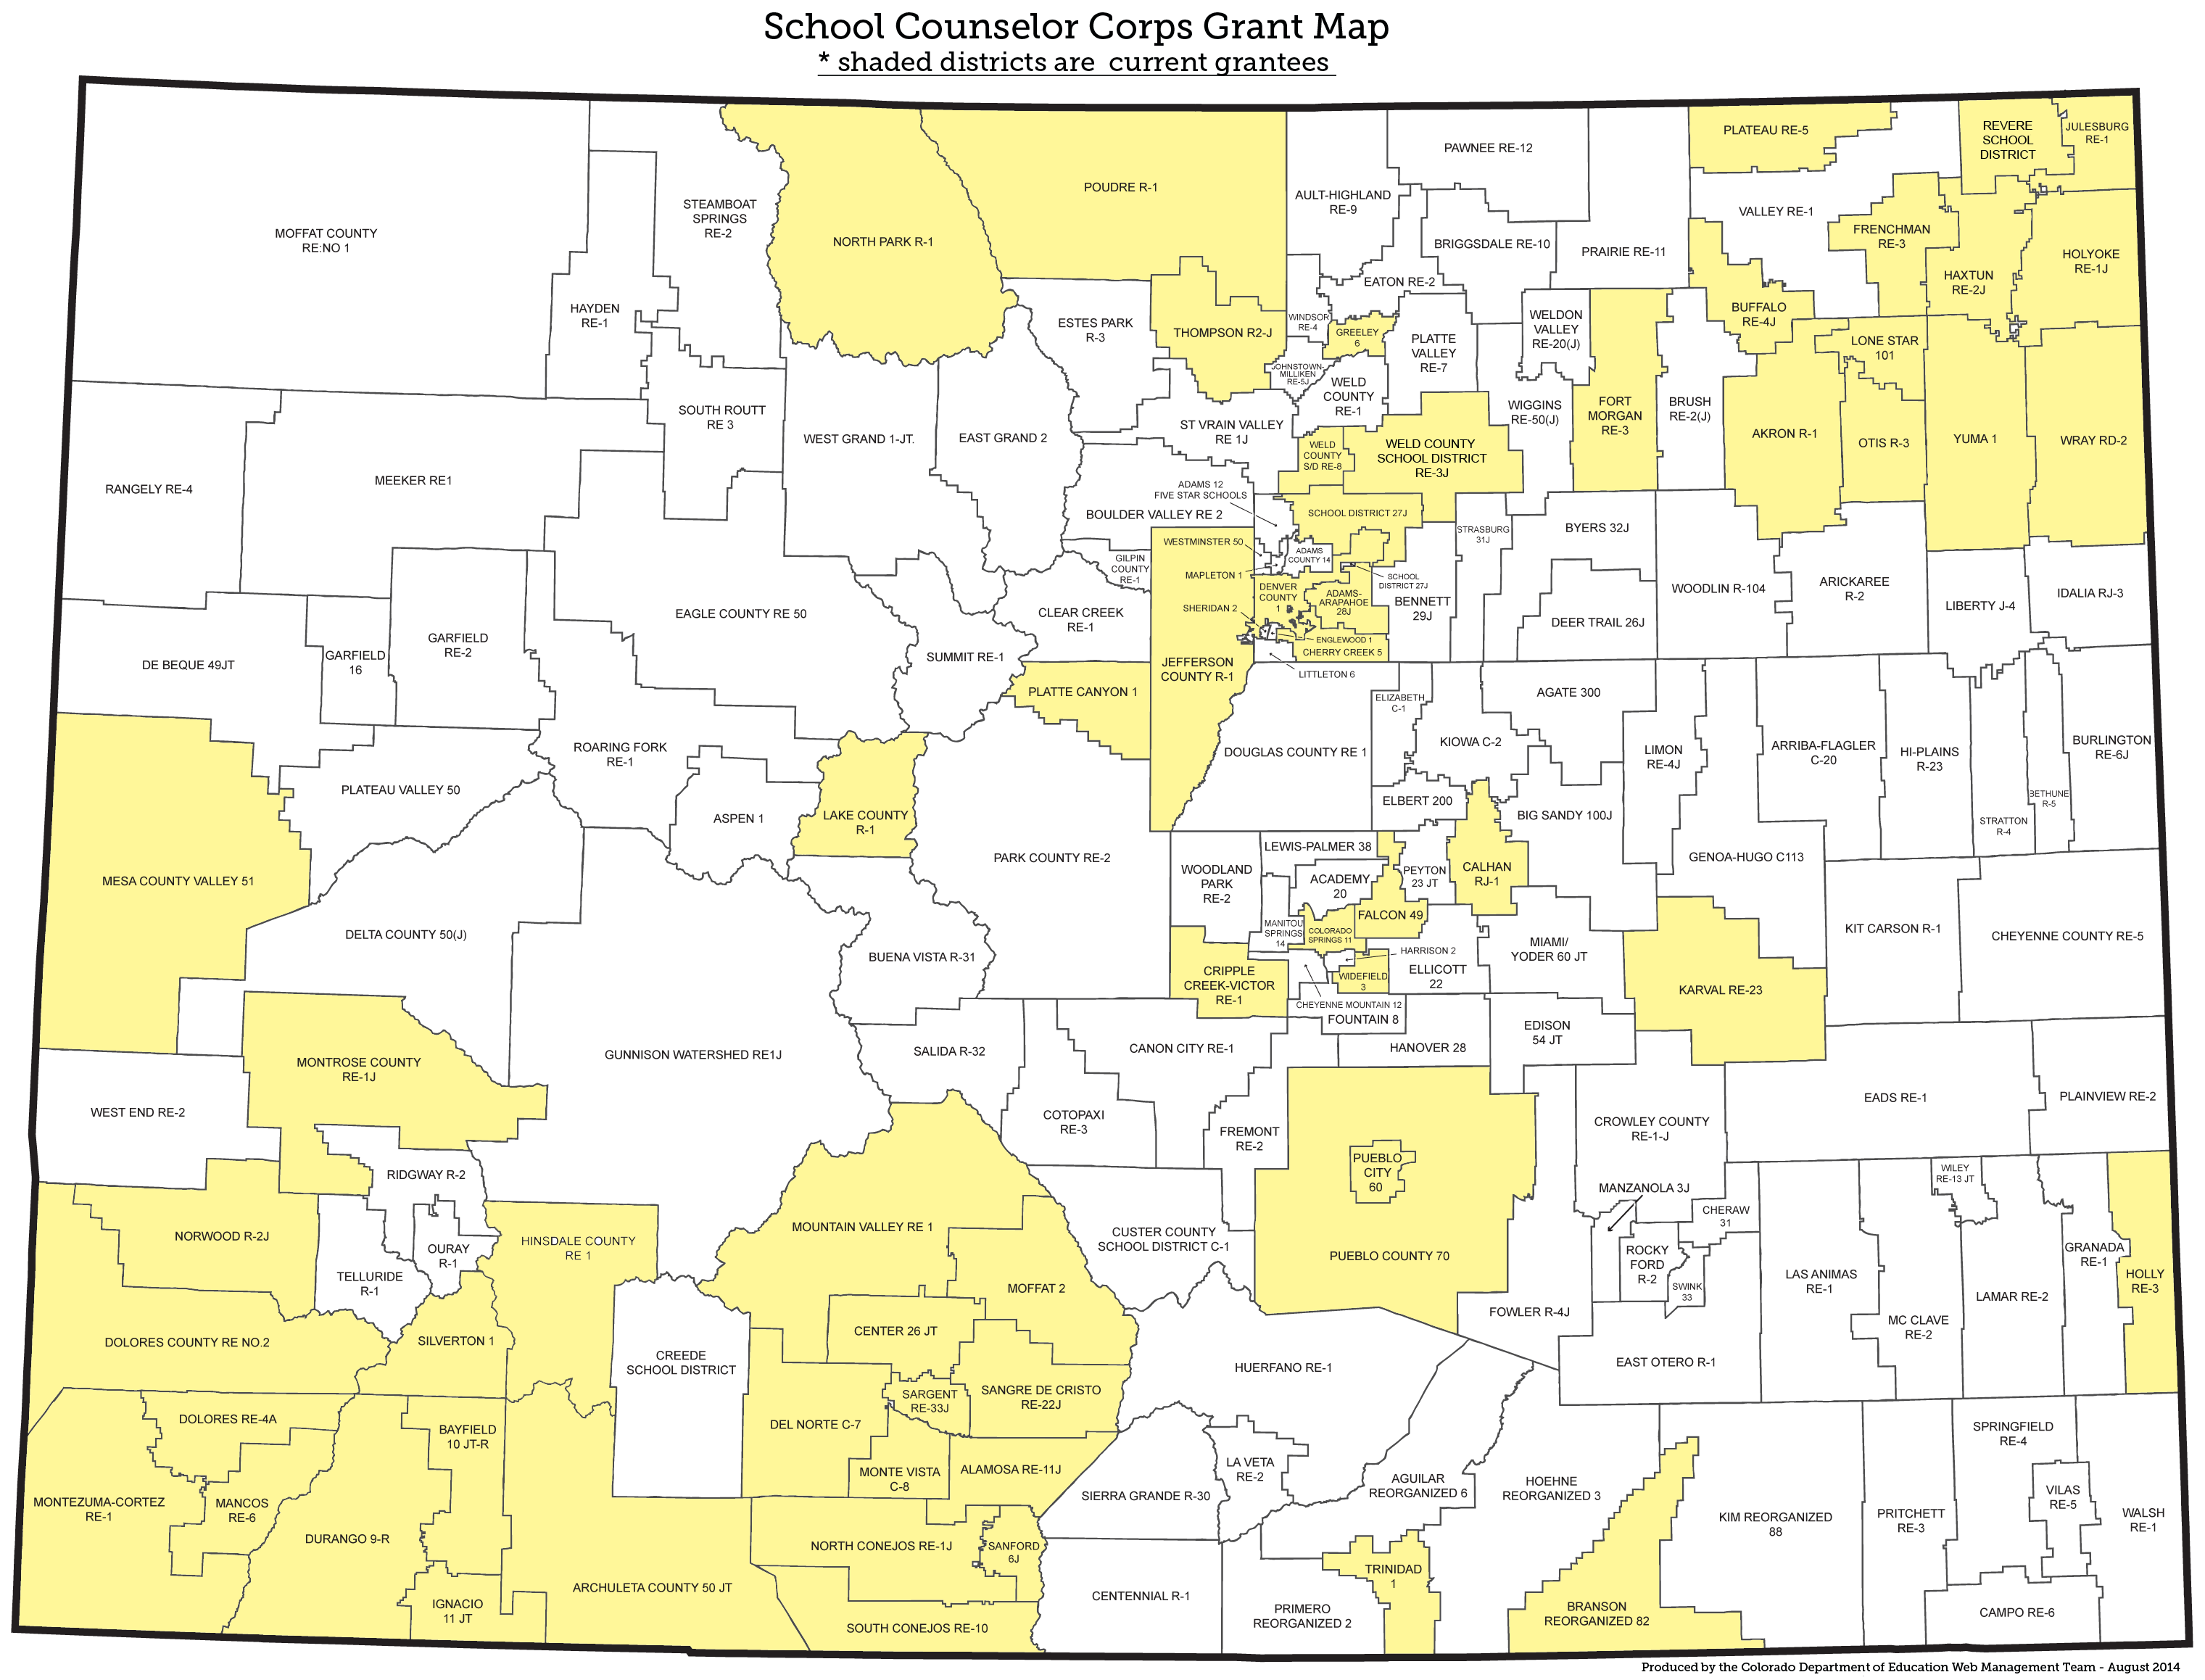 School Counselor Corps Grant Program Map